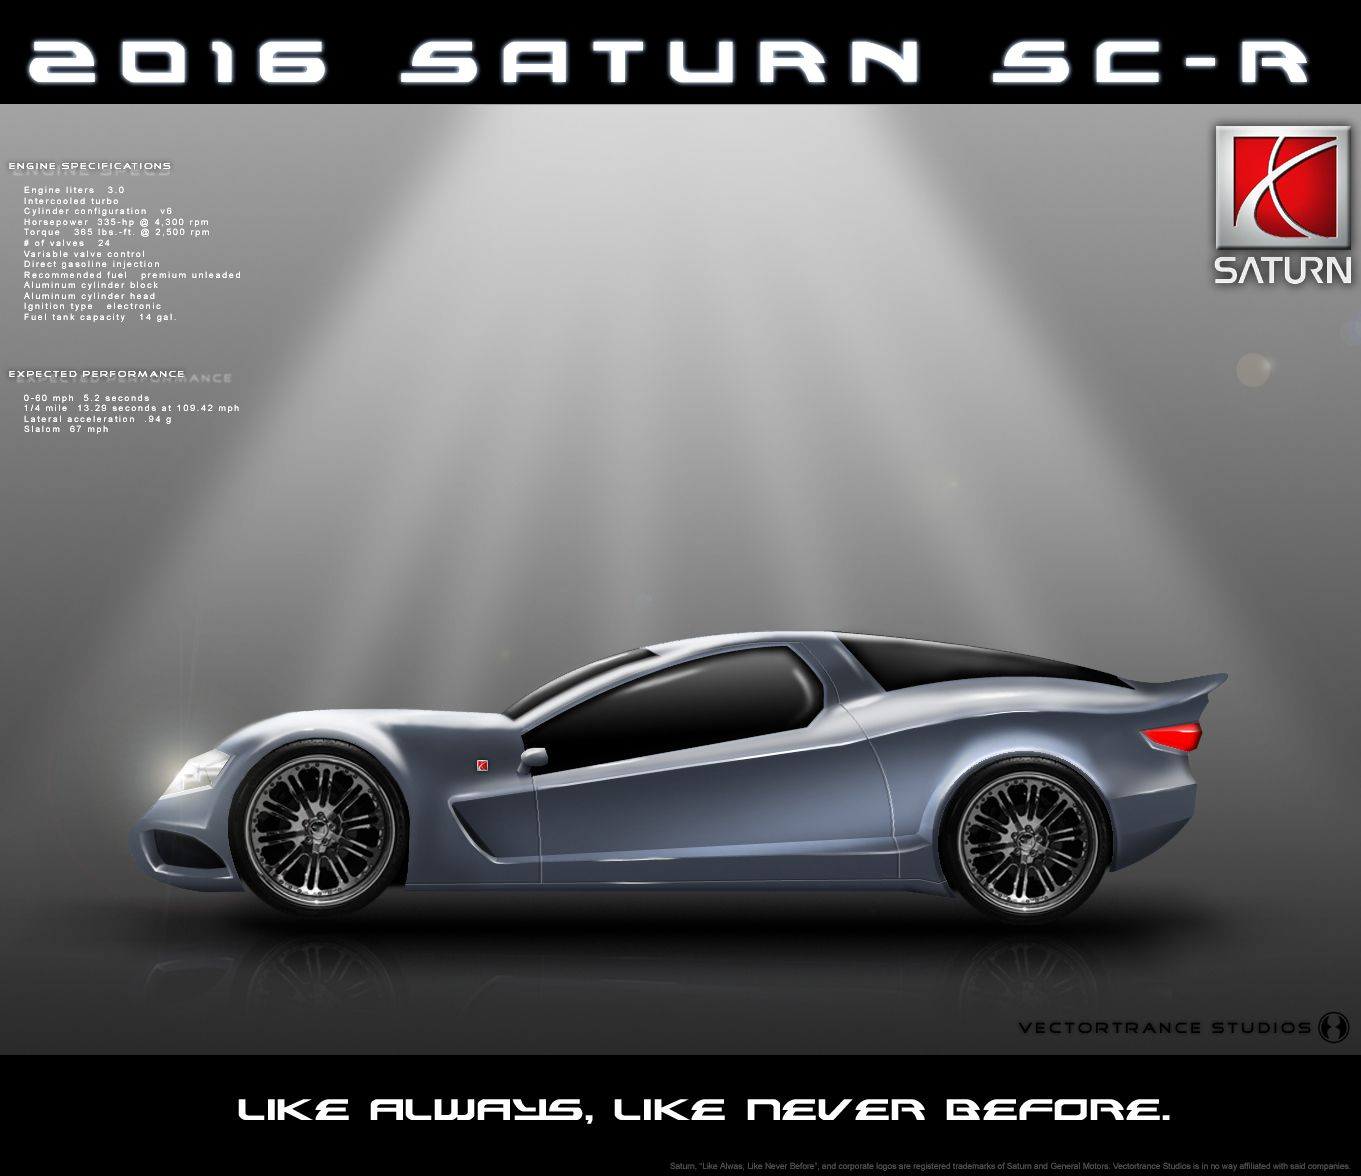 2016 Saturn Sc R Sky Buses Dream Cars Busses